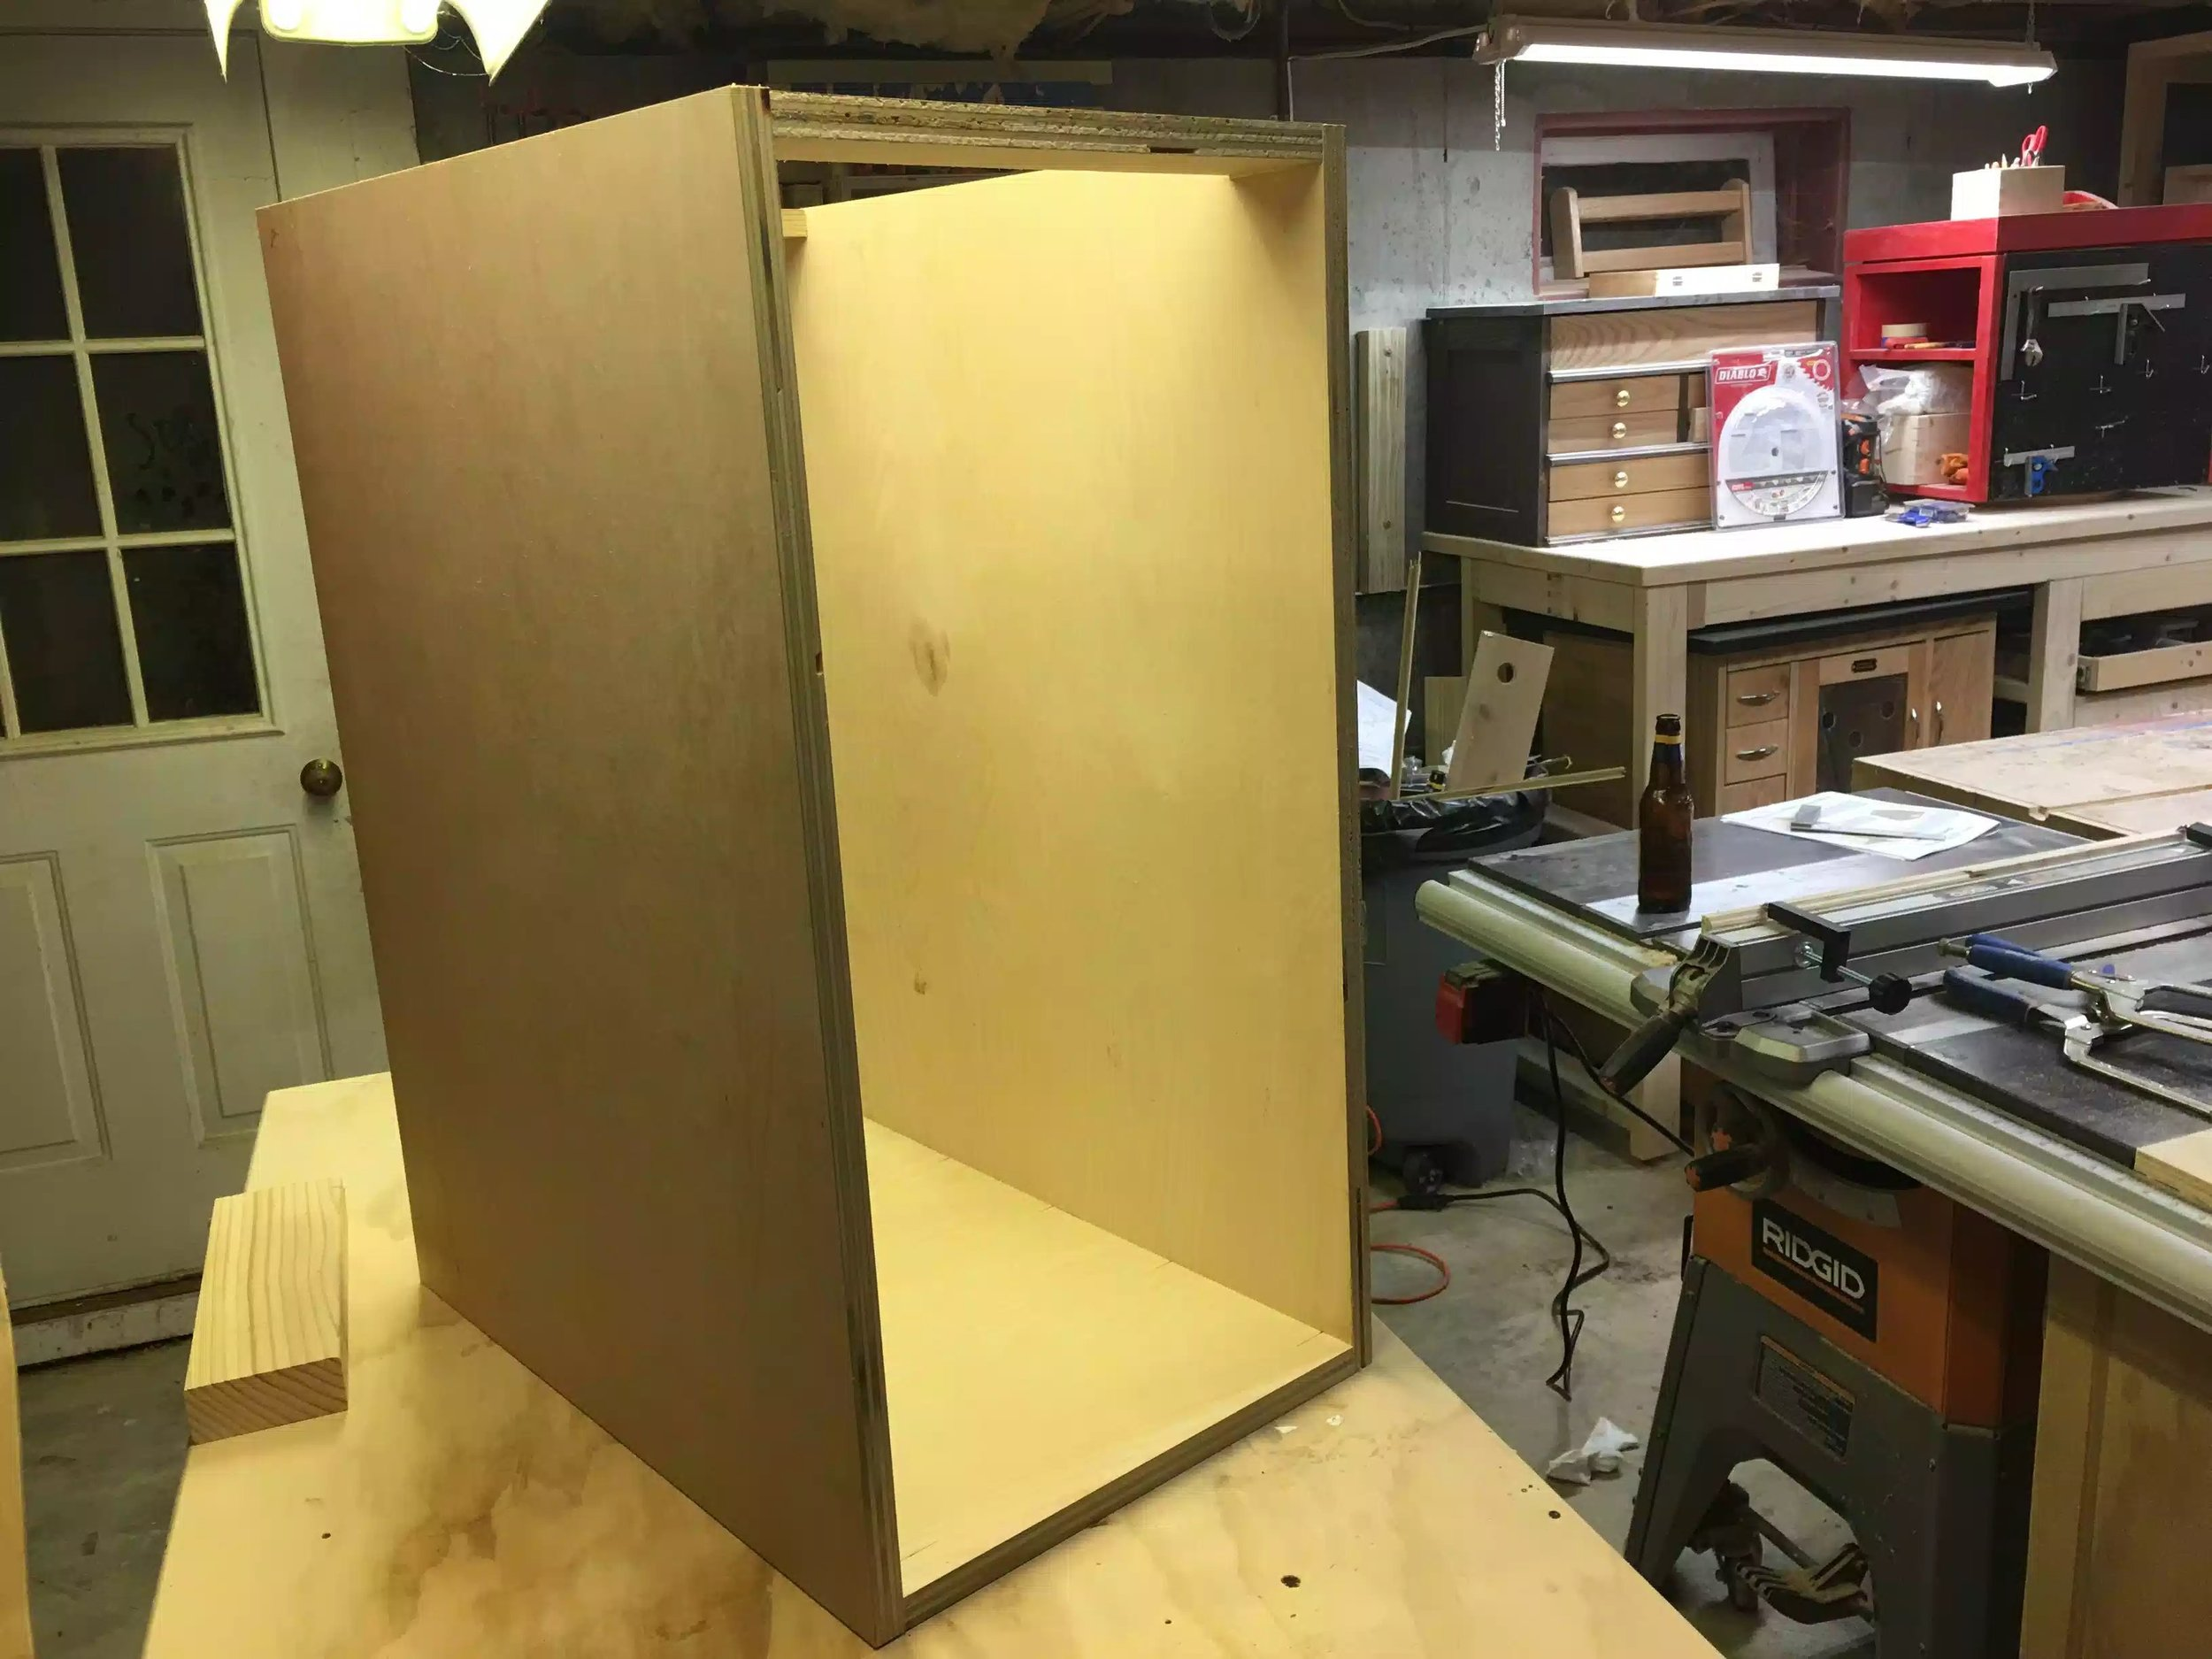 Here you can see the front side of the cabinet, this is where I will be installing the 5 drawers.